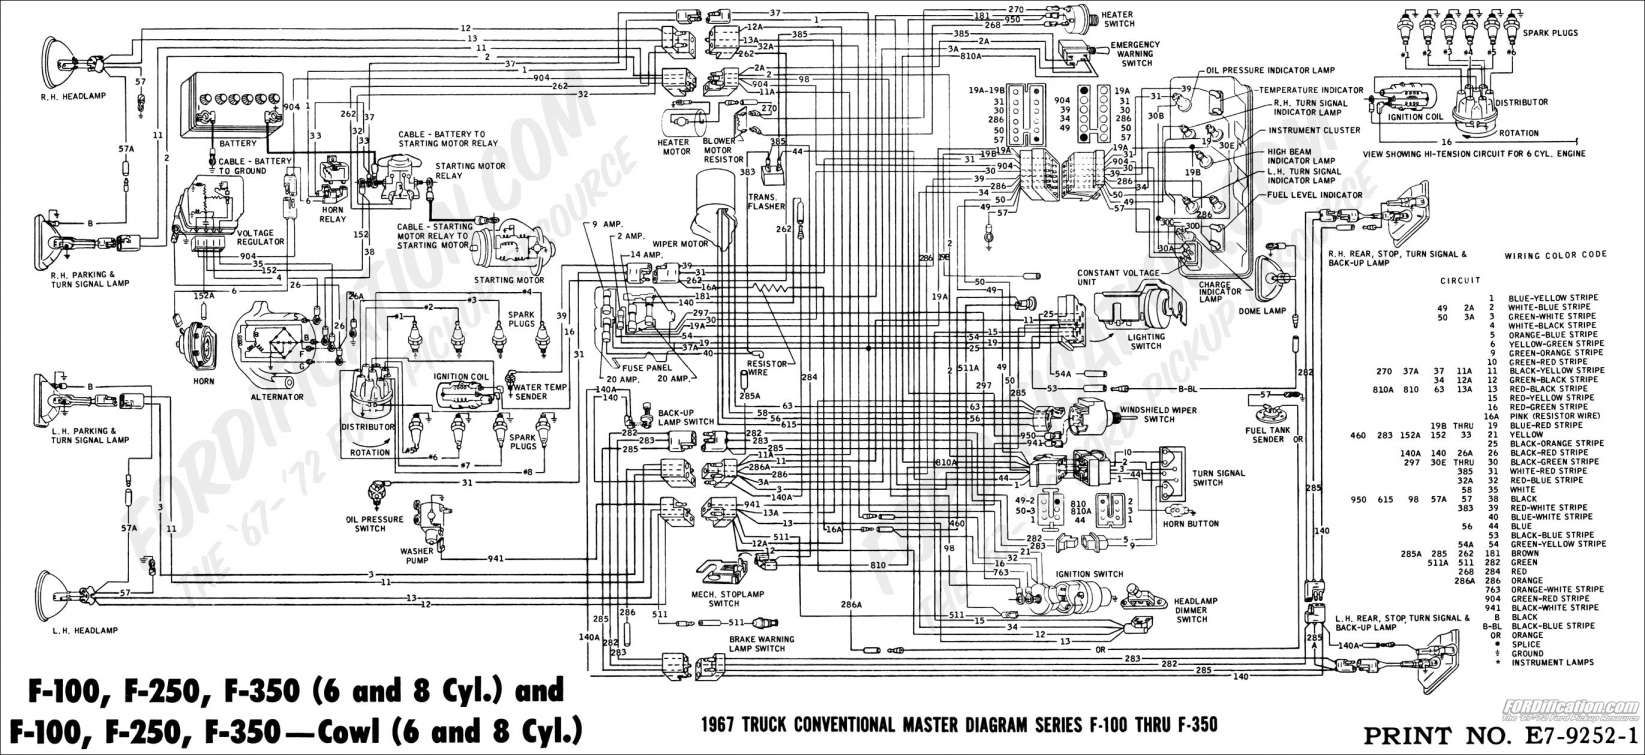 1995 Ford F150 Engine Wiring Diagram and F Engine Wiring Harness | Wiring  Schematic Diagram | Autos mustang, Camión ford, Mustang | Ford F150 Wiring Diagrams |  | Pinterest